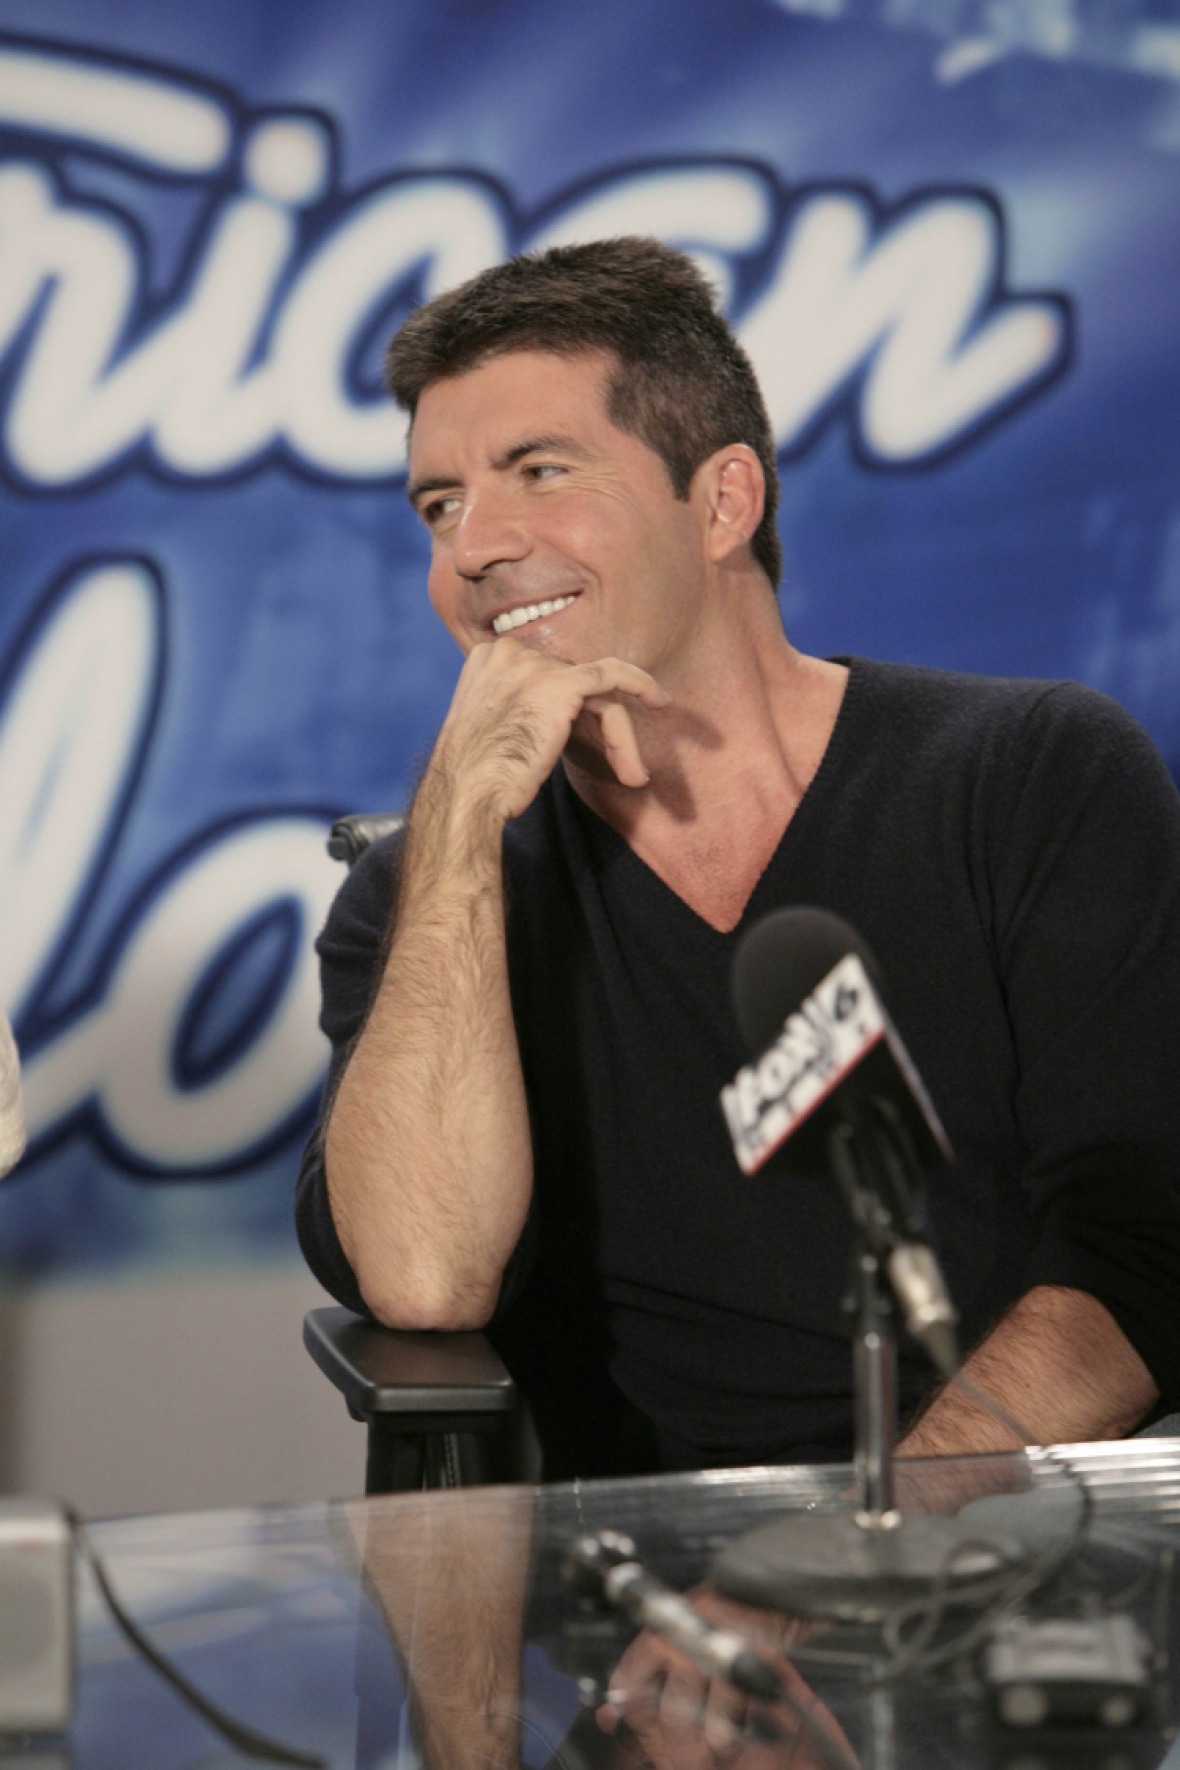 simon cowell getty images